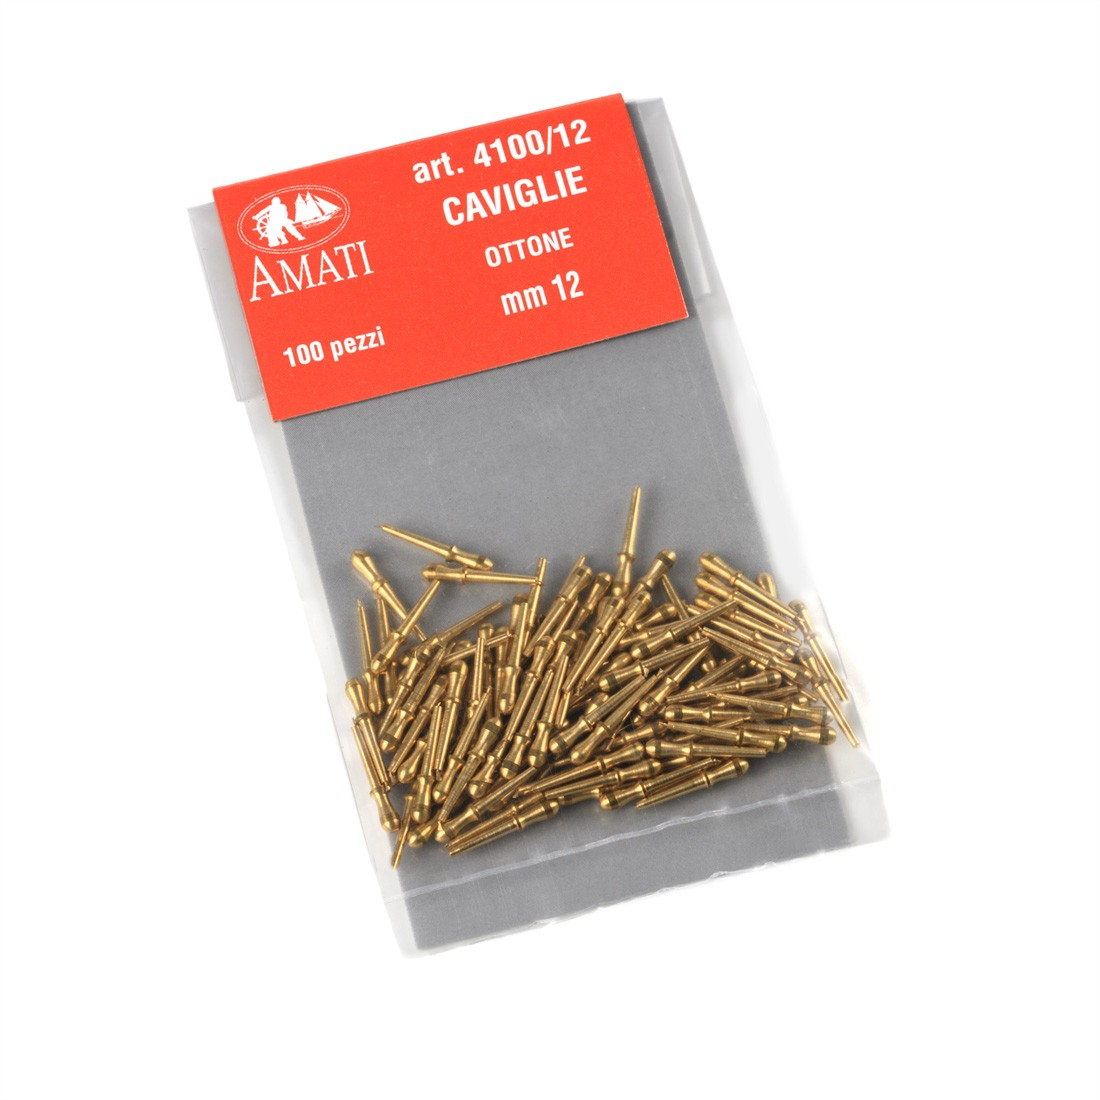 Brass belaying pins mm.12